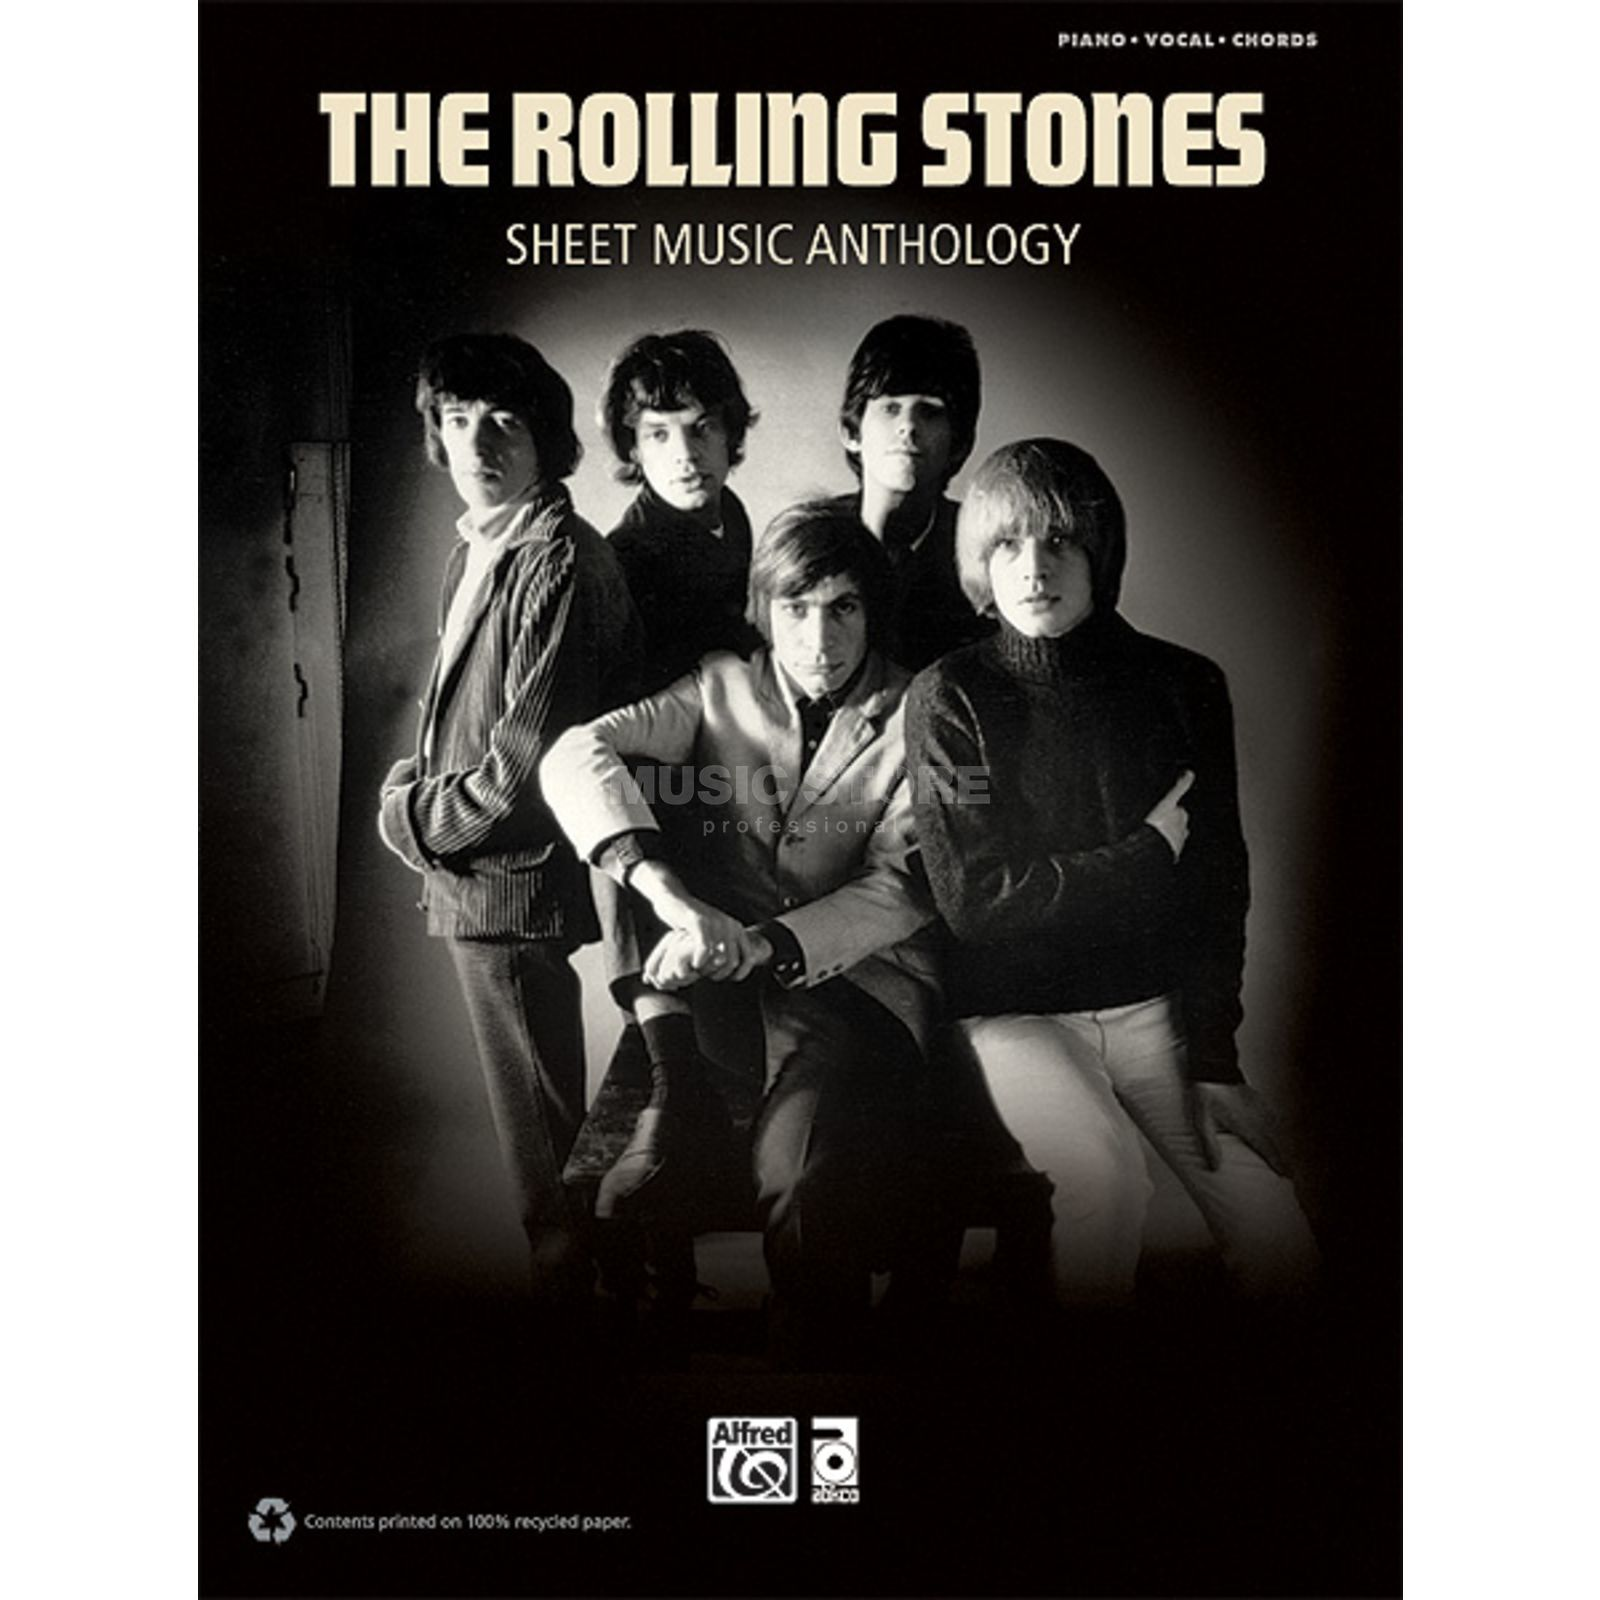 Alfred Music The Rolling Stones: Sheet Music Anthology Produktbillede